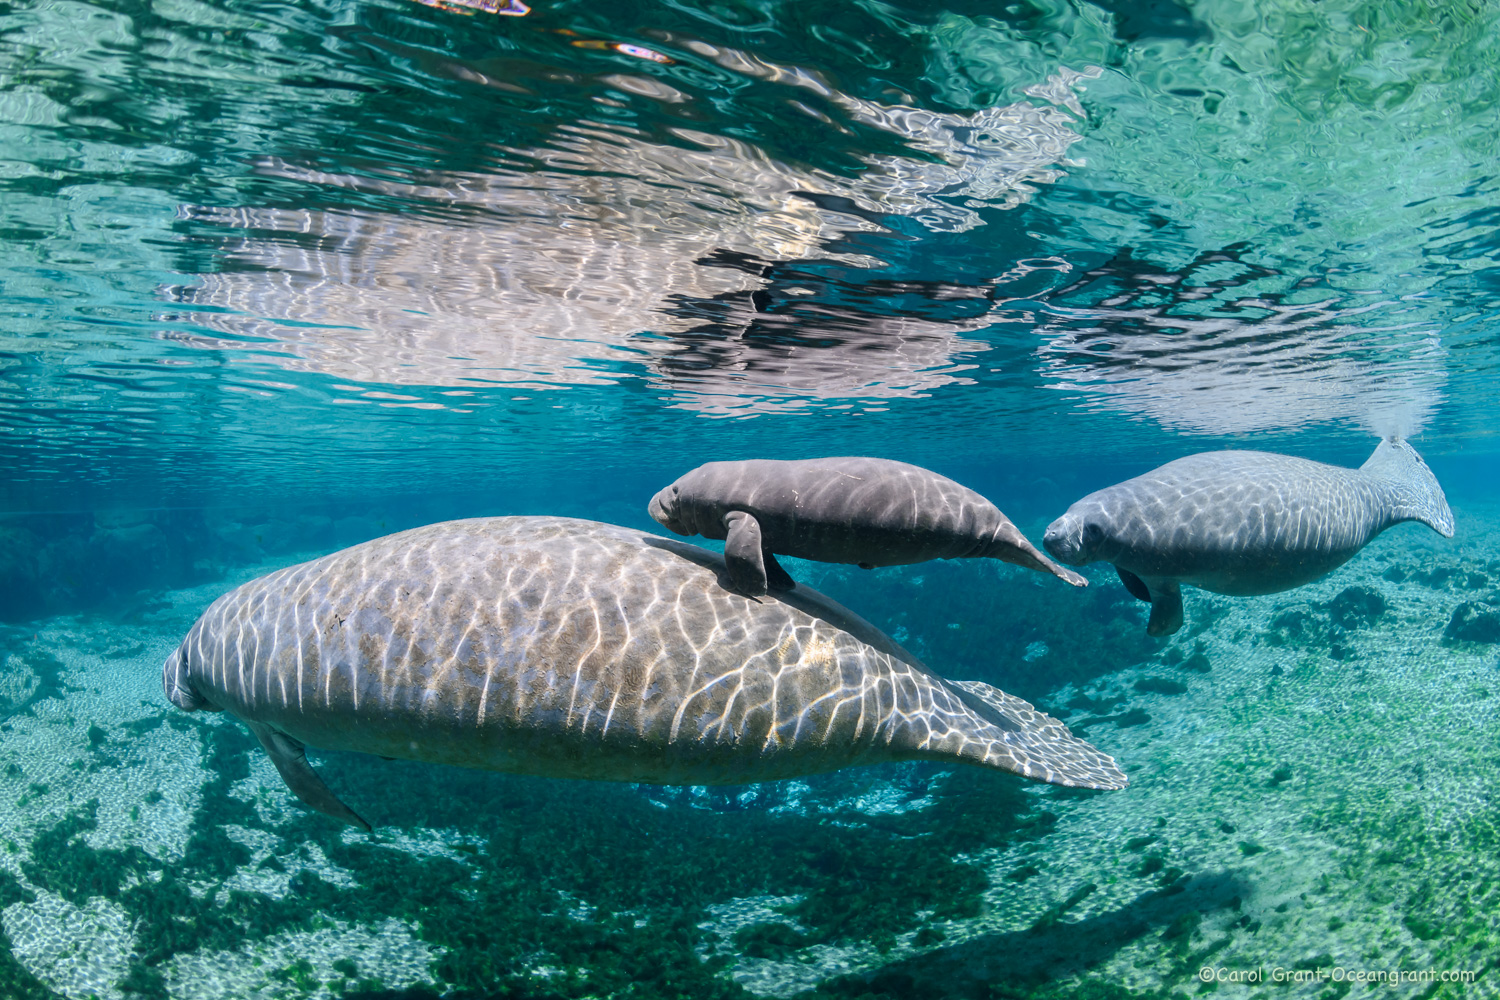 Baby manatee with mom followed by male,©CGrant-oceangrant.com